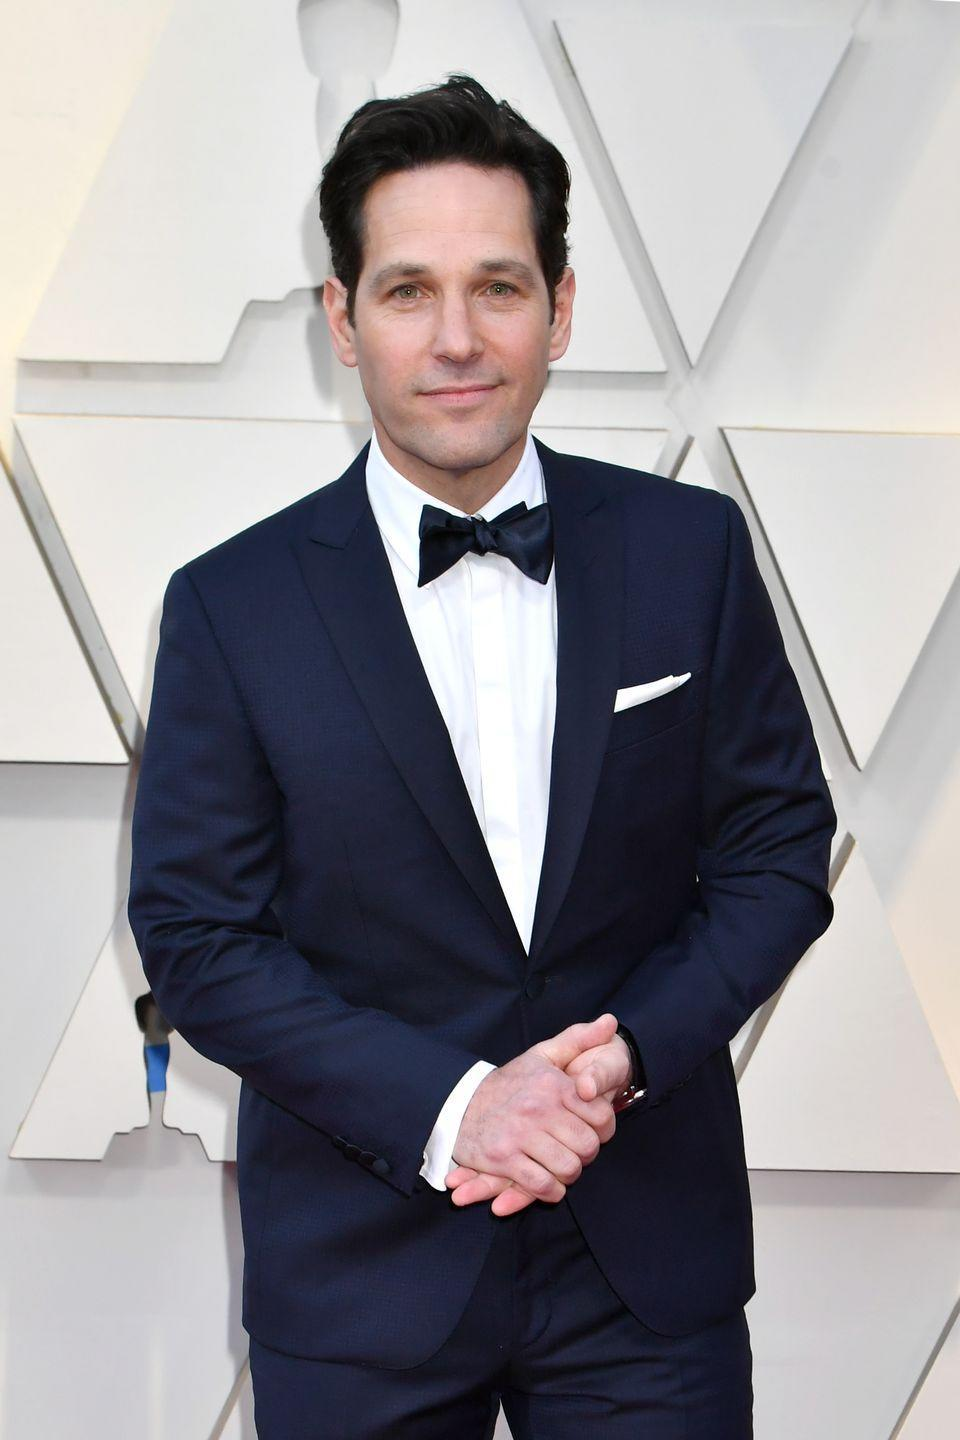 """<p>Now that we know a <a href=""""https://ew.com/movies/2017/04/03/bridesmaids-paul-rudd-deleted-scene/"""" rel=""""nofollow noopener"""" target=""""_blank"""" data-ylk=""""slk:Paul Rudd-Kristen Wiig romance was filmed"""" class=""""link rapid-noclick-resp"""">Paul Rudd-Kristen Wiig romance was filmed</a> for <em>Bridesmaids</em>, we can't help but obsess over what it might have looked like. Rudd filmed a date scene with the film's leading lady, but due to time constraints, the director chose not to introduce another love interest for Wiig. </p>"""